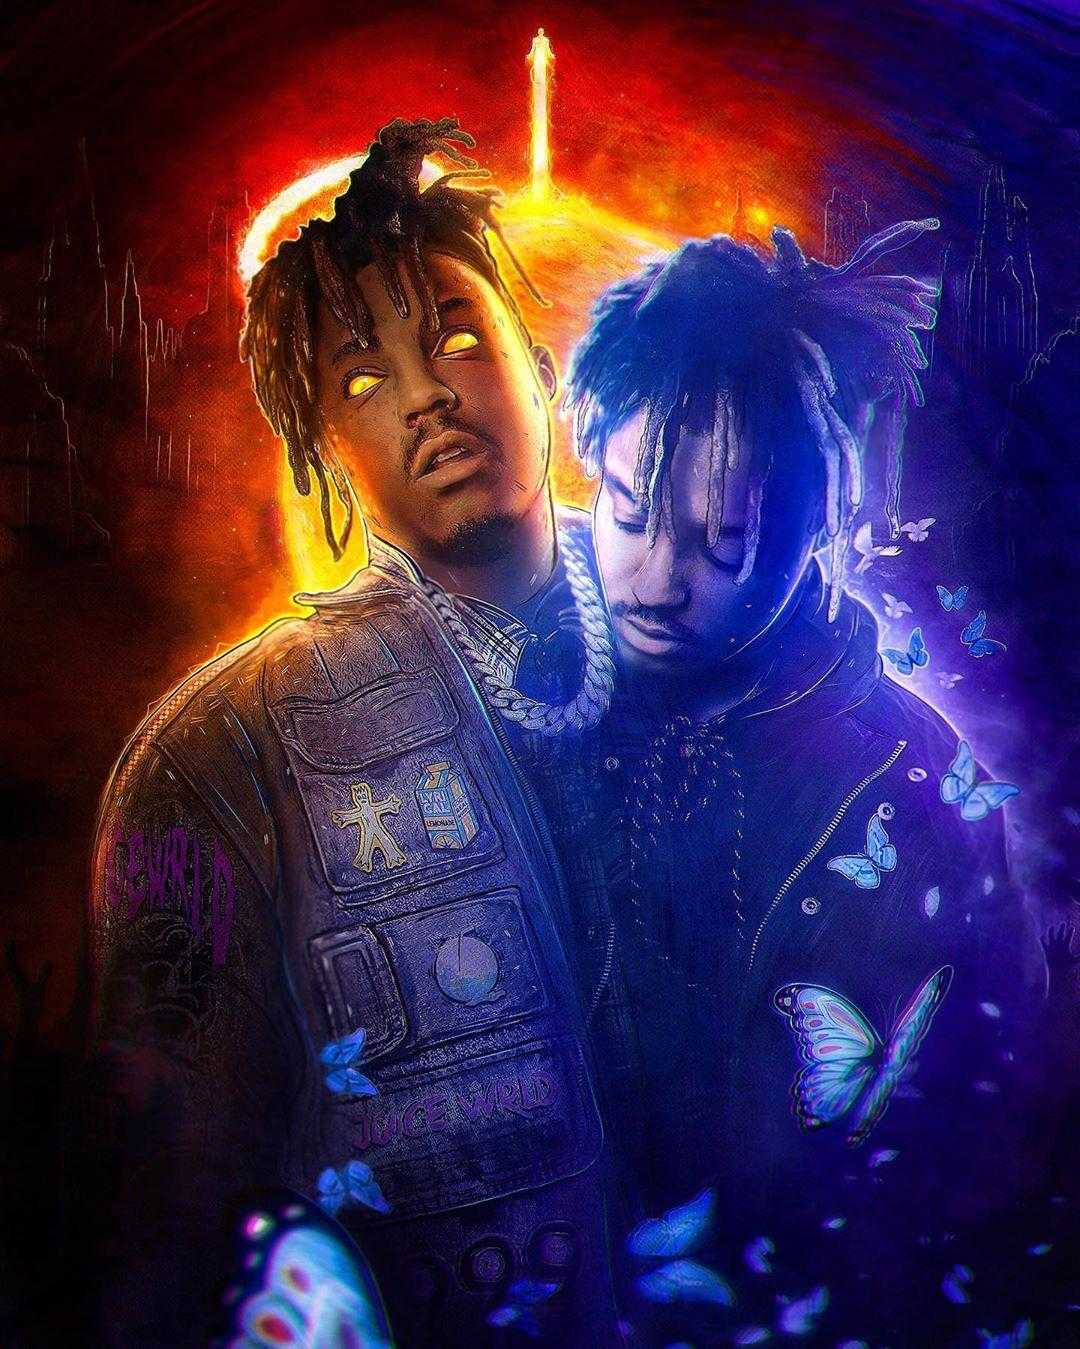 Cool Juice Wrld Wallpaper Nawpic